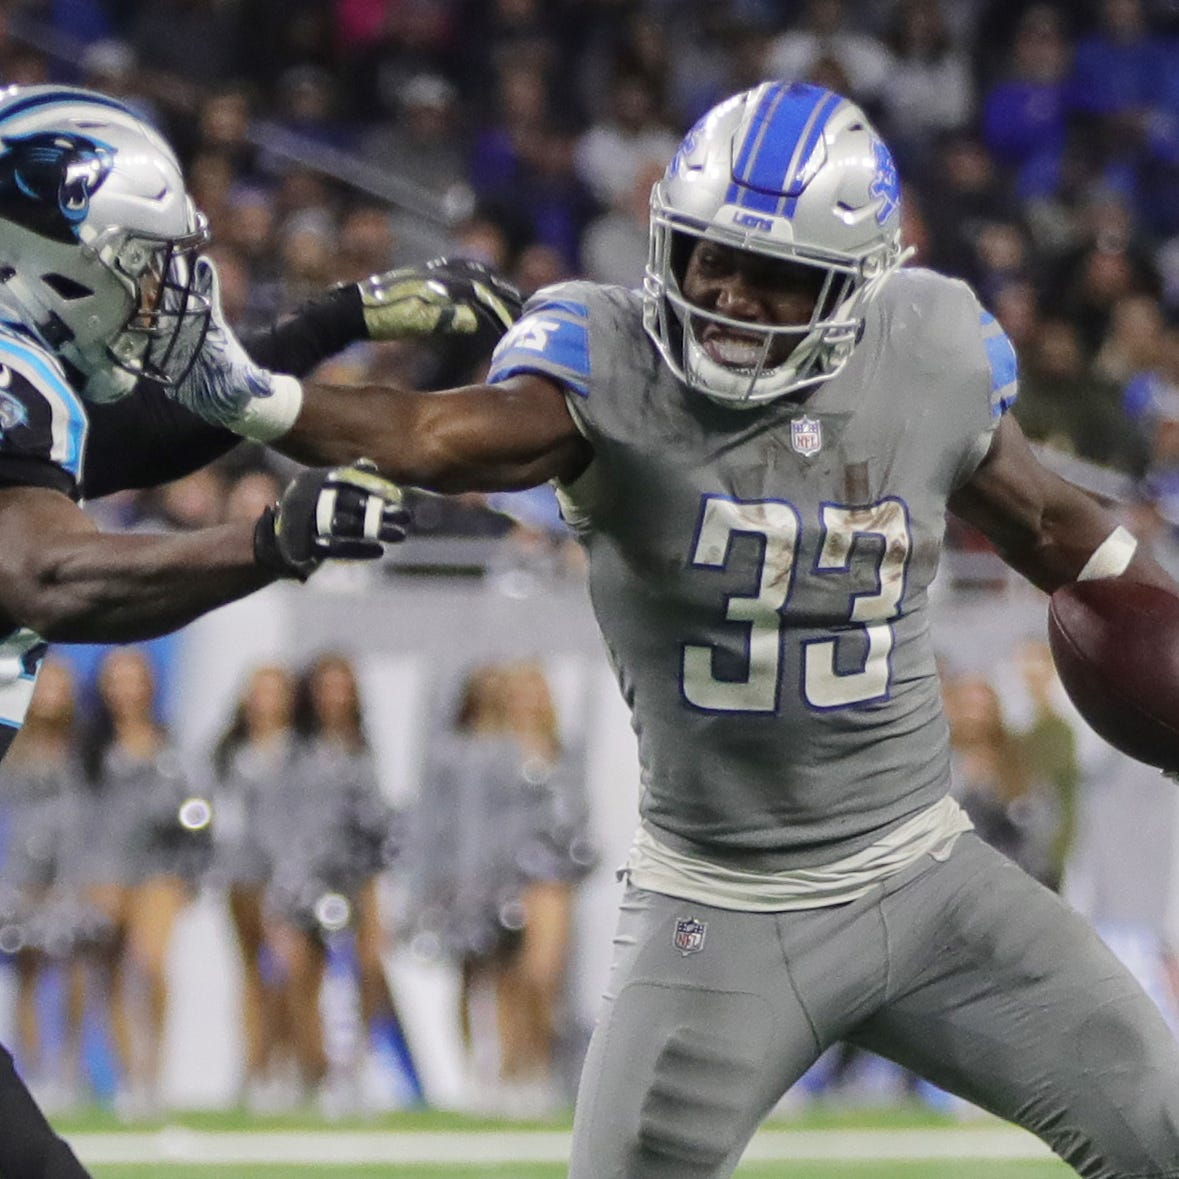 ESPN: Detroit Lions' Kerryon Johnson sprains knee, won't need surgery